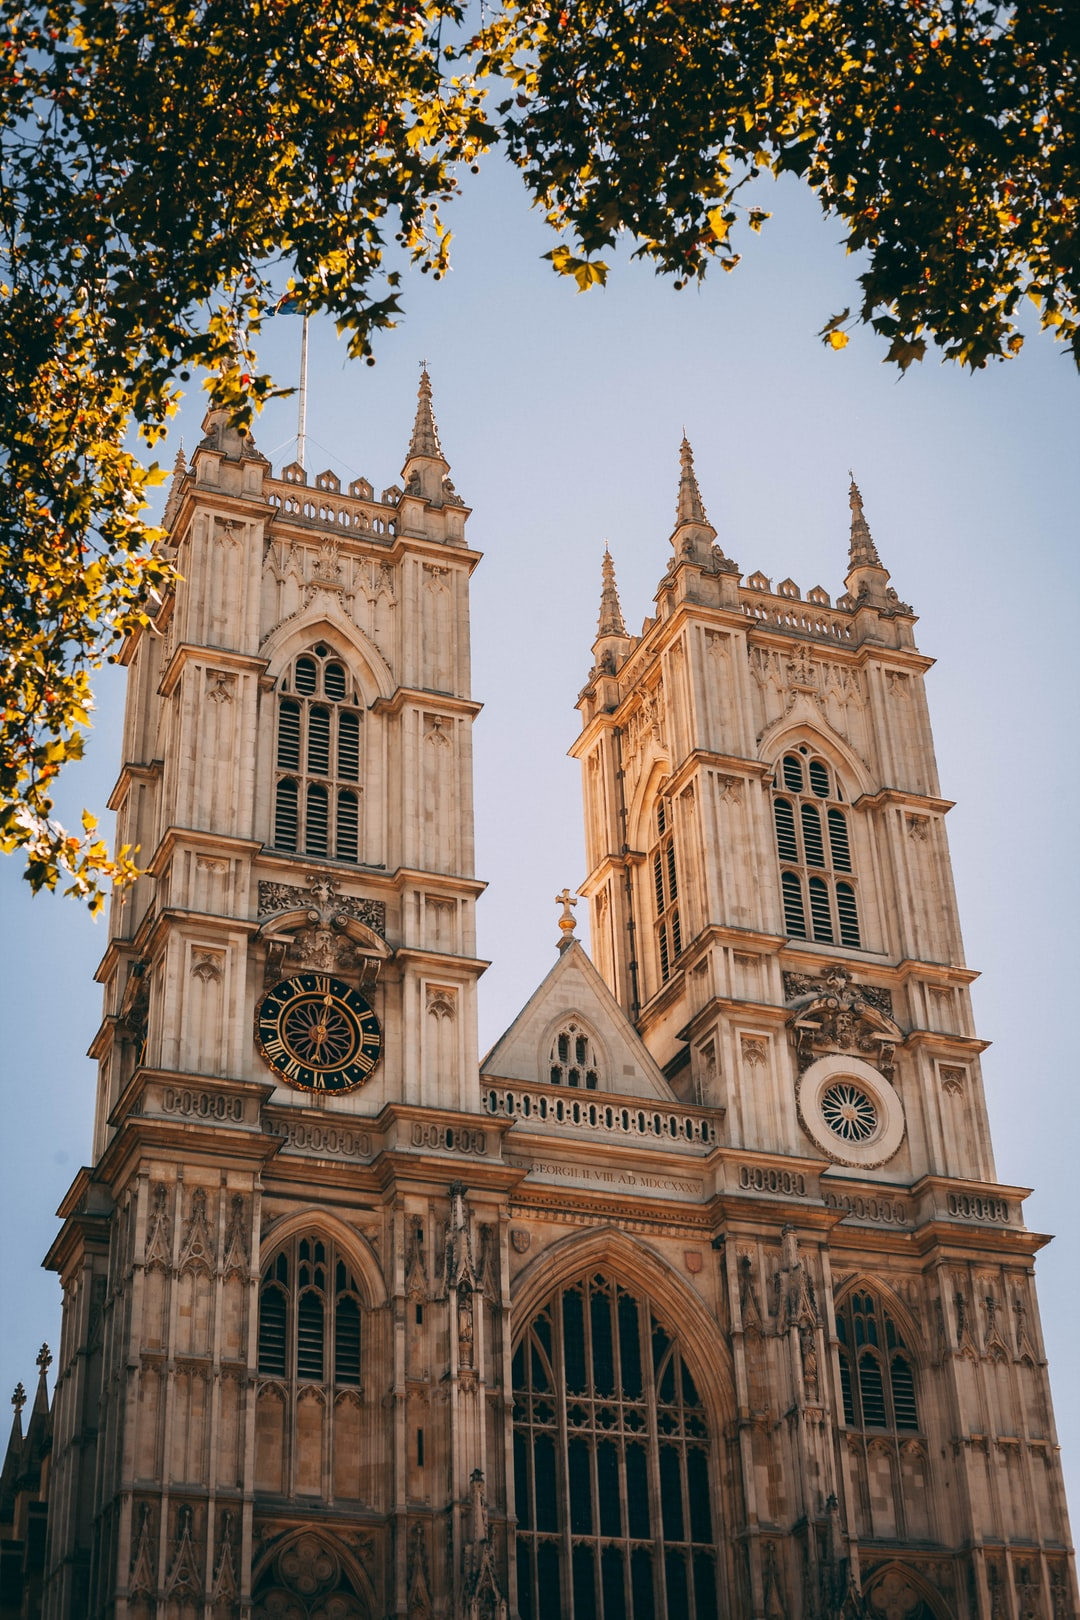 Luckily, during my trip in London, the weather was just amazin. No clouds, pure sun, something you don't see everyday! And I believe this photography is one of my best during this trip because of the light, weather and of course subject. The Westminster Abbey